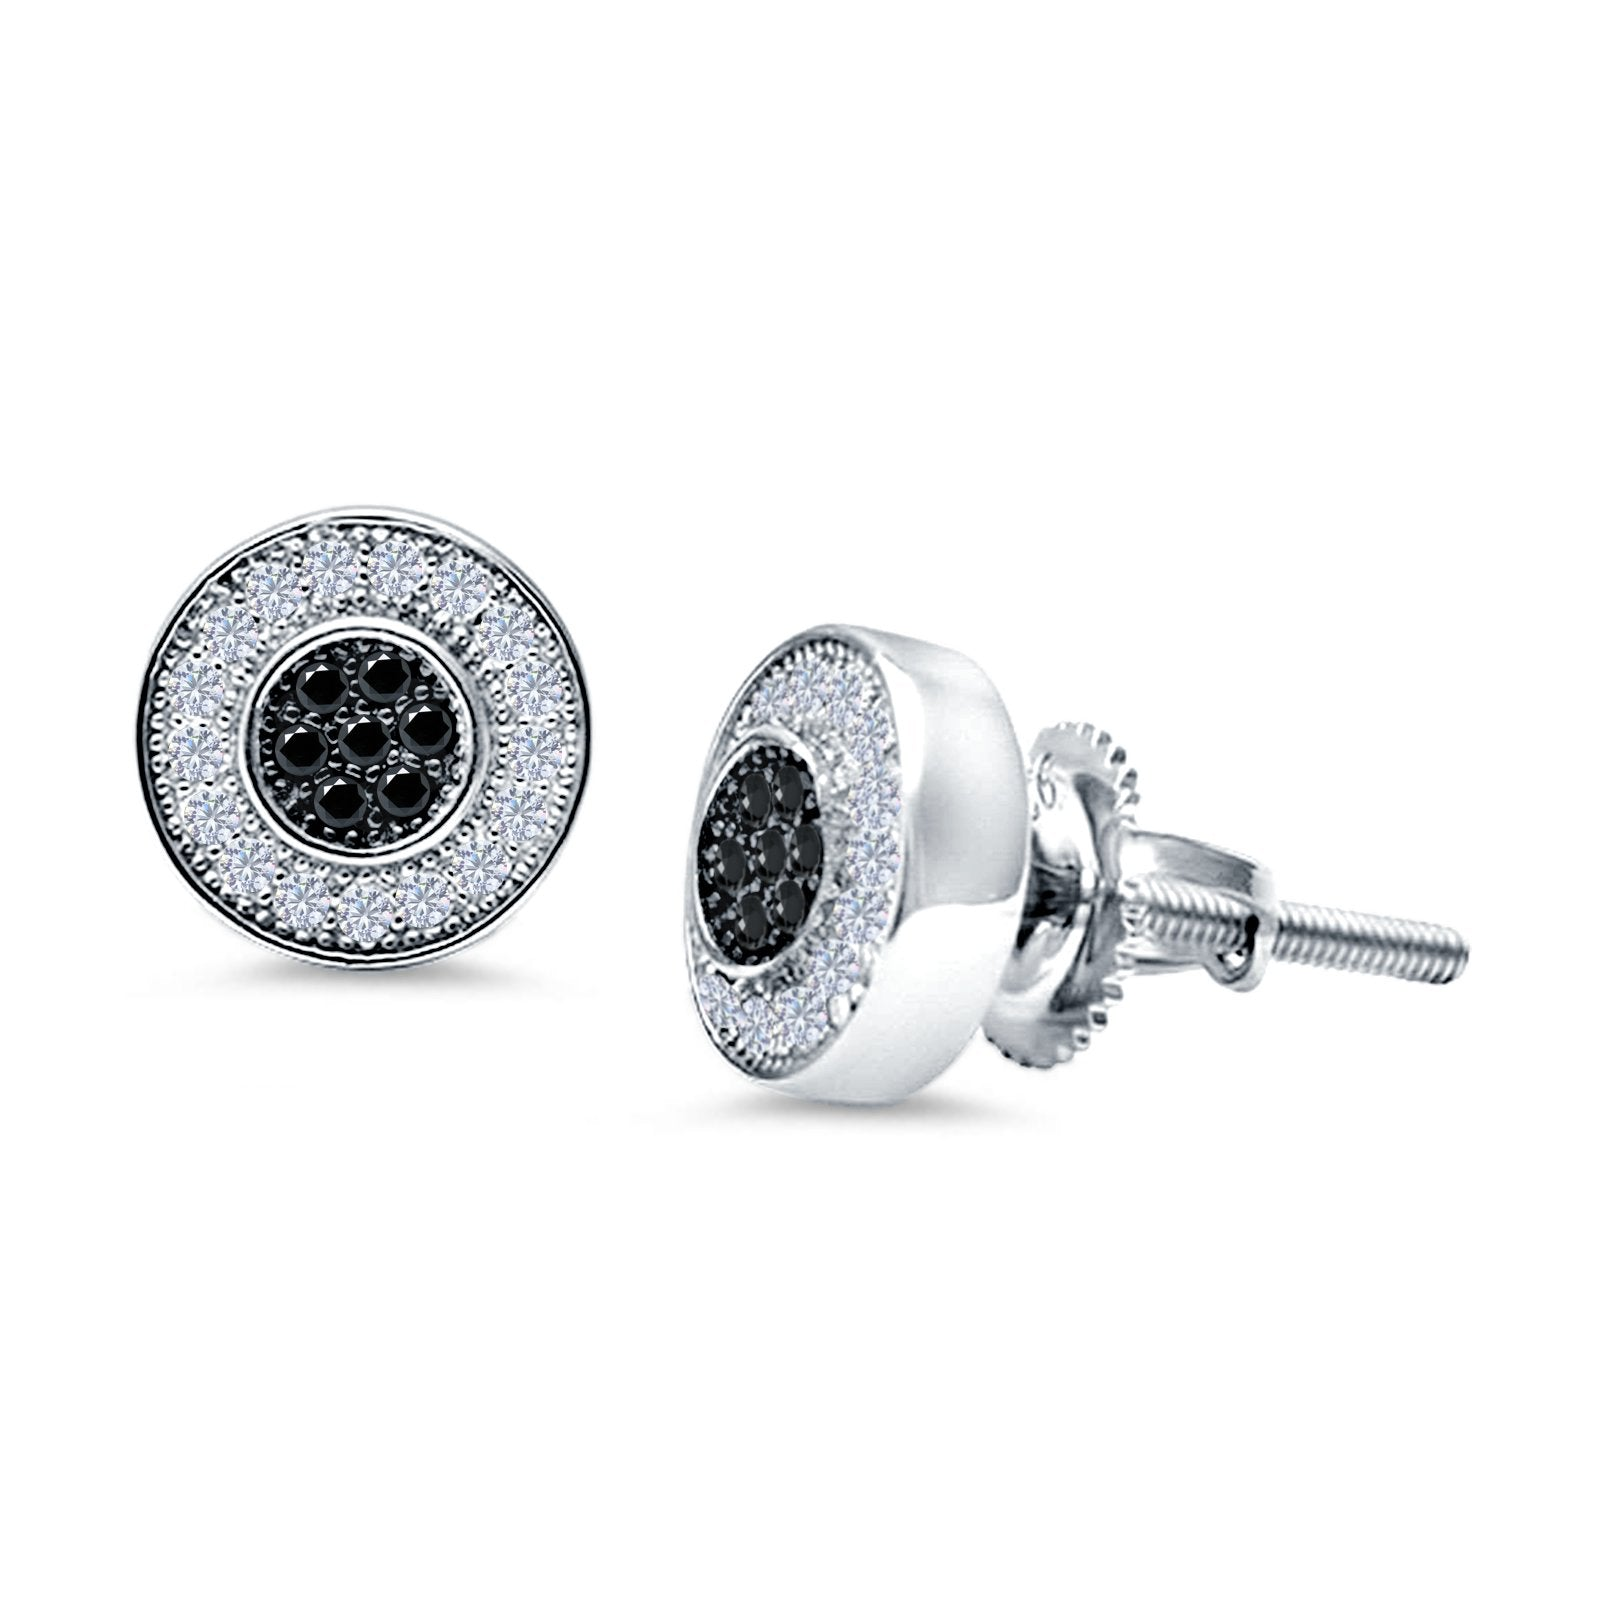 Micro Pave Stud Earrings Round Simulated Black CZ 925 Sterling Silver